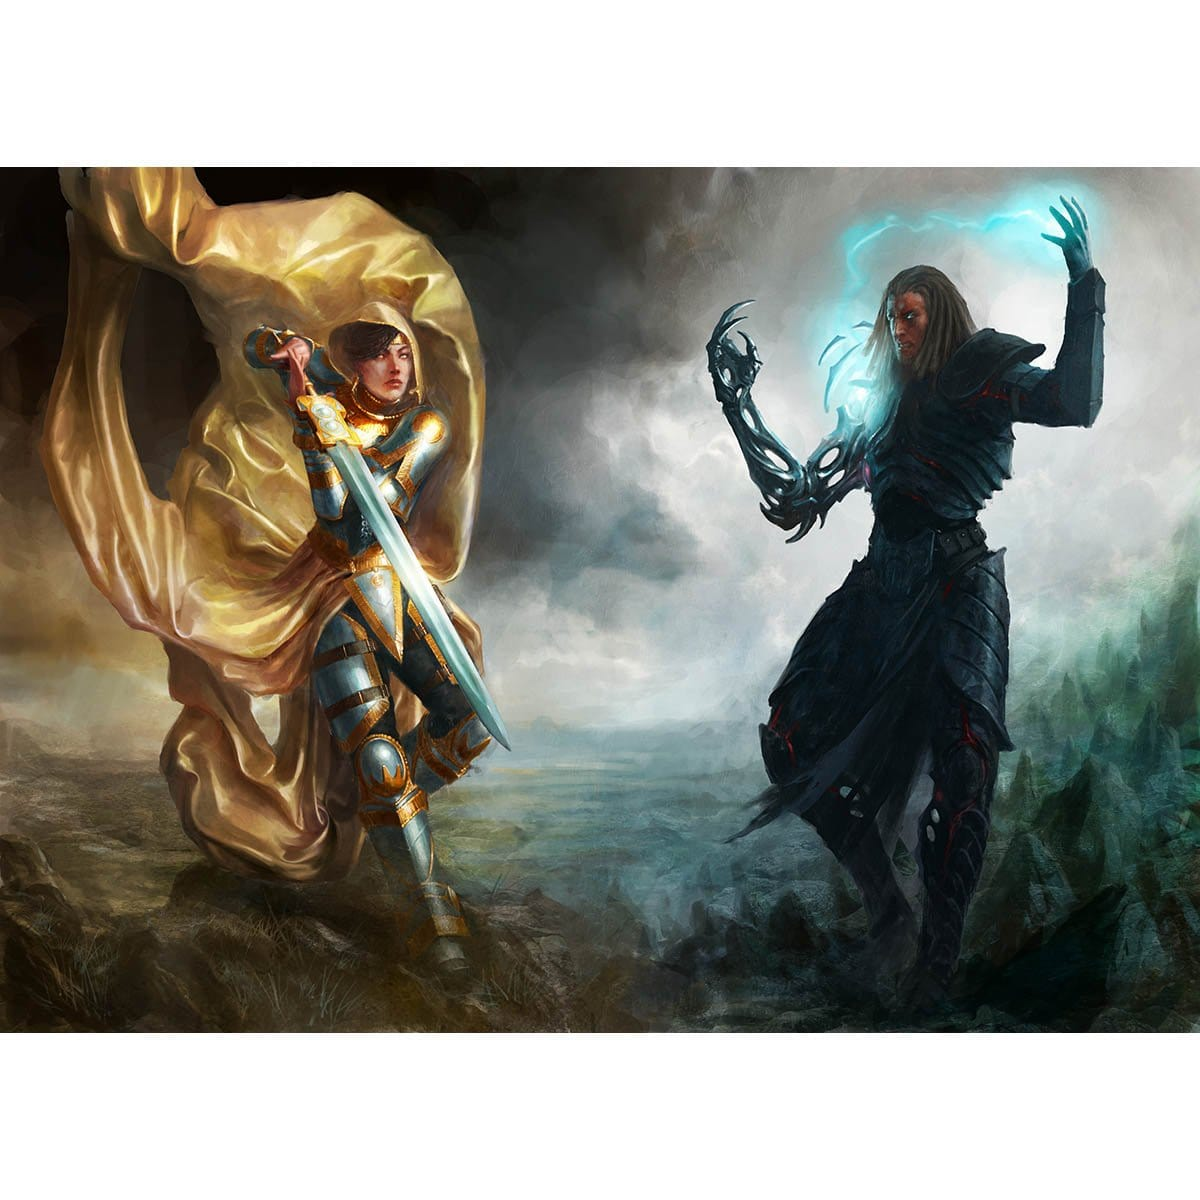 Elspeth vs. Tezzeret Print - Print - Original Magic Art - Accessories for Magic the Gathering and other card games